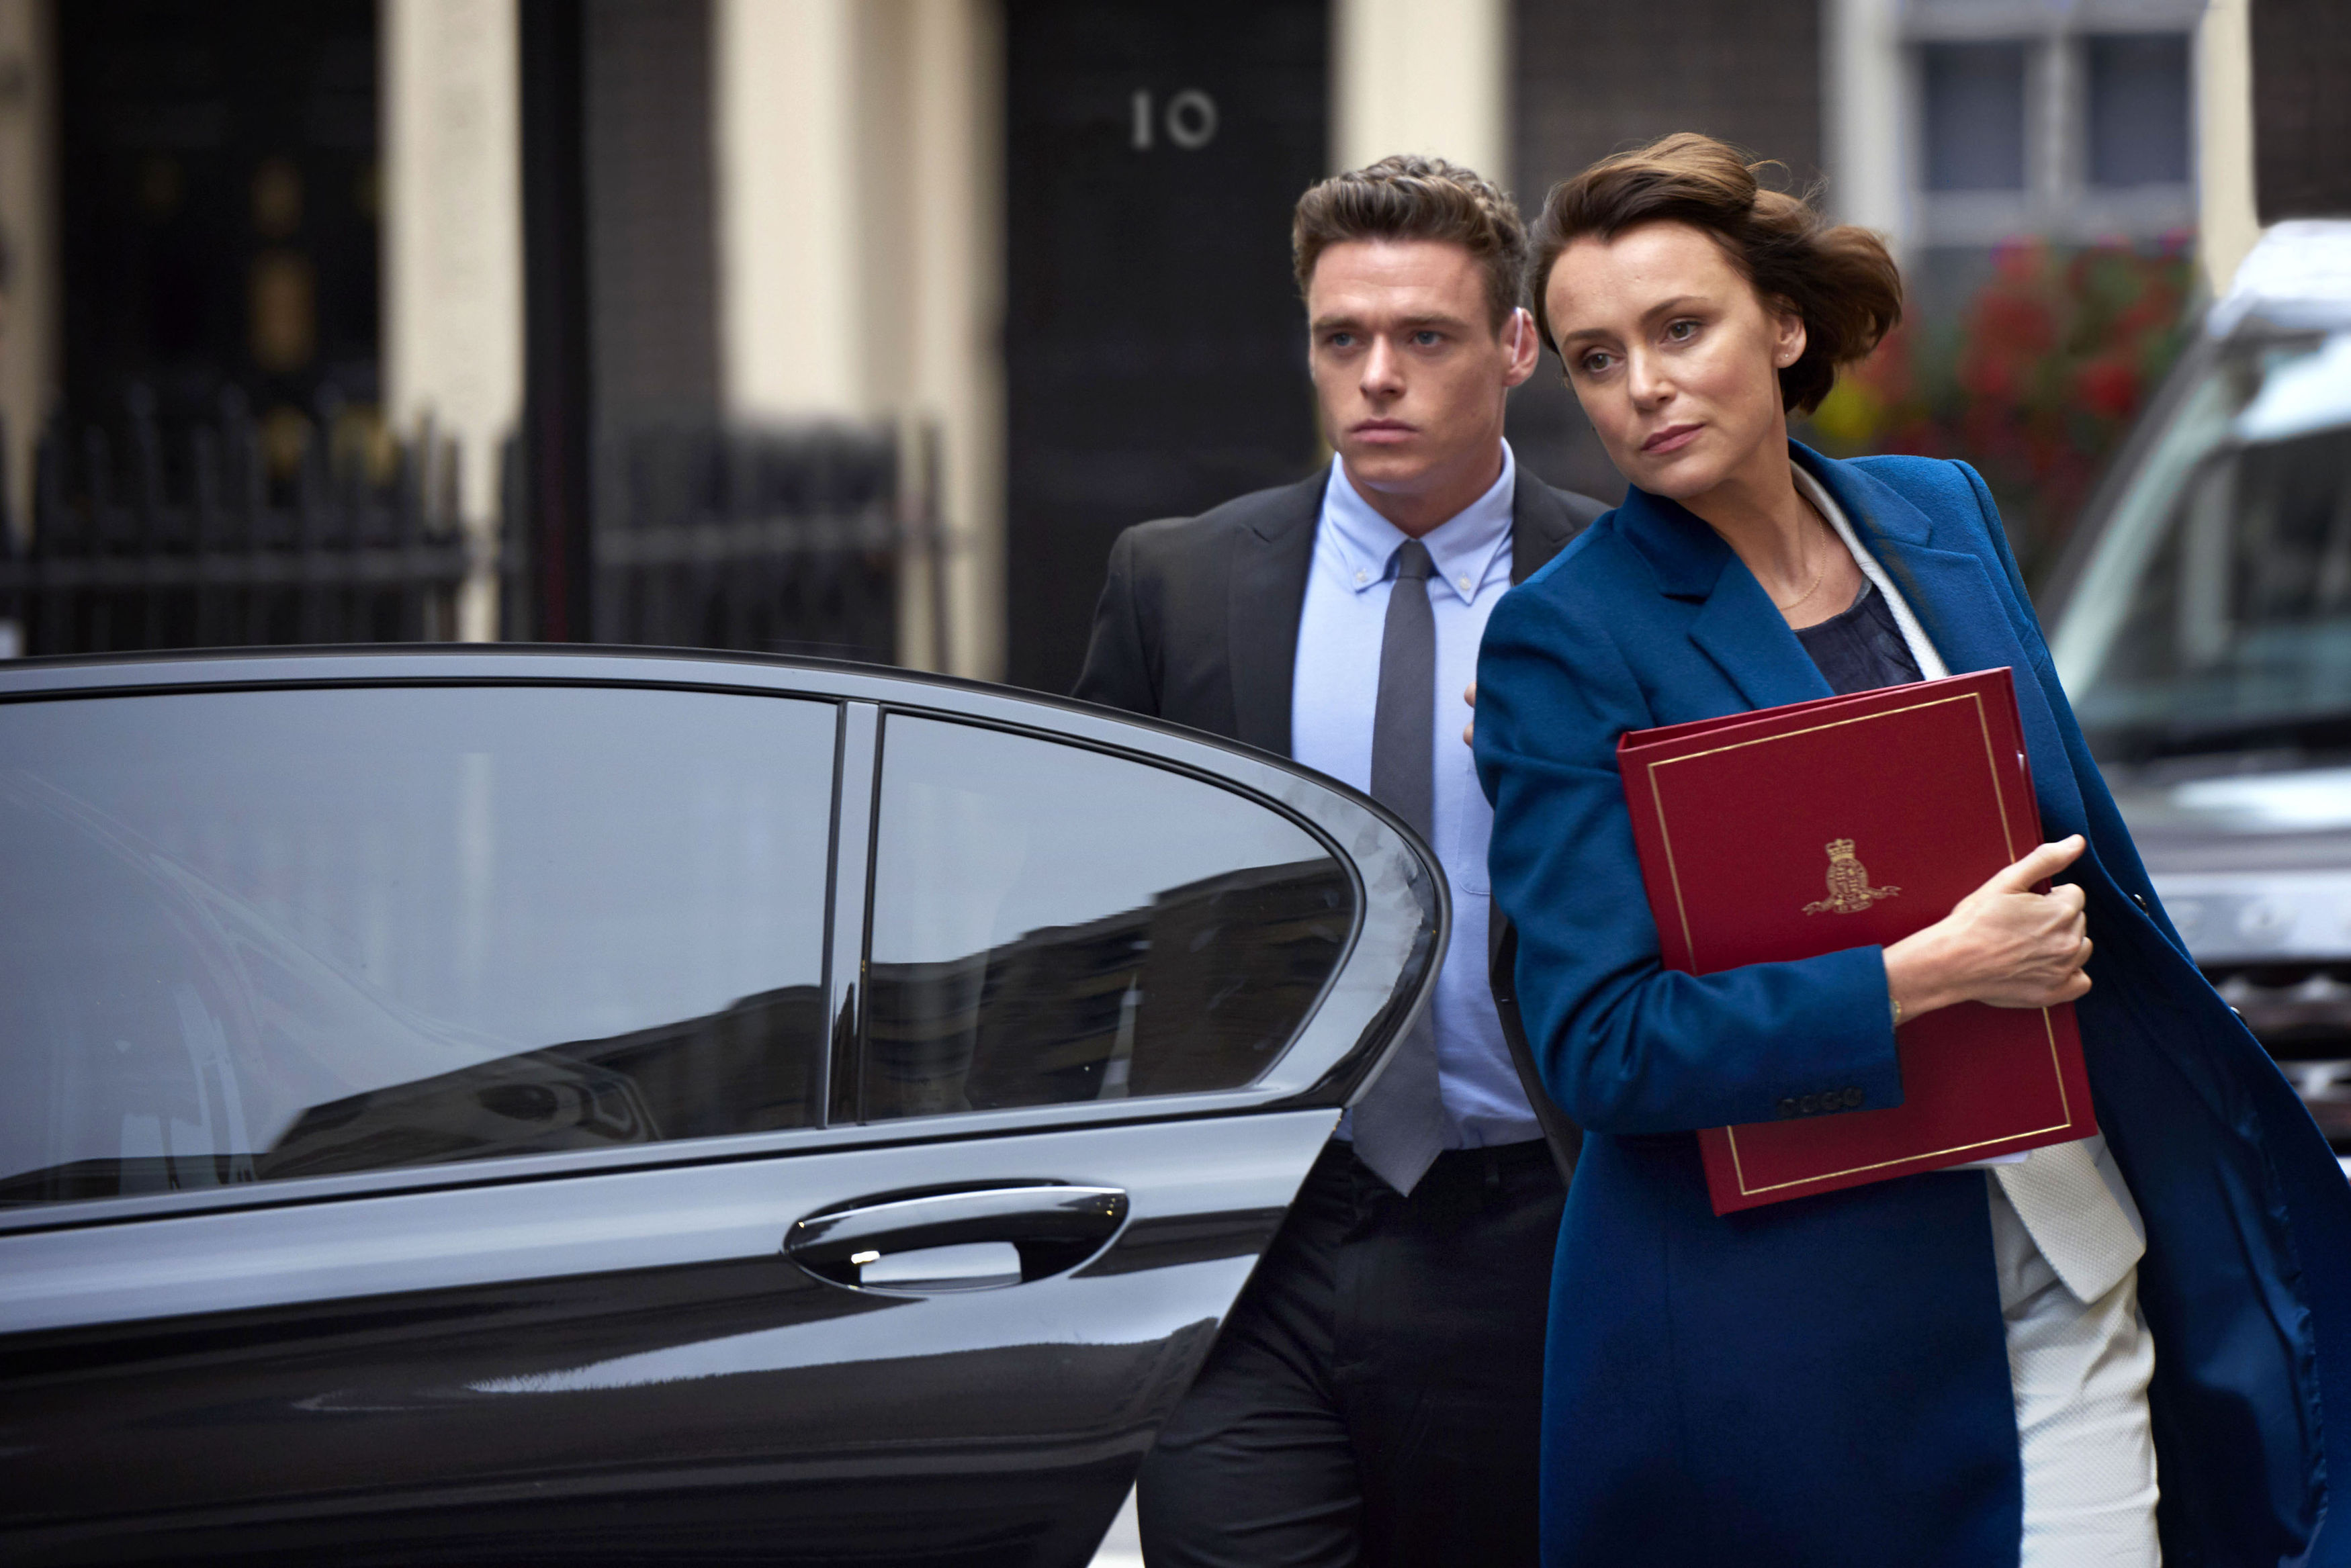 Keeley Hawes reveals the terrifying moment her son was caught up in a terror attack